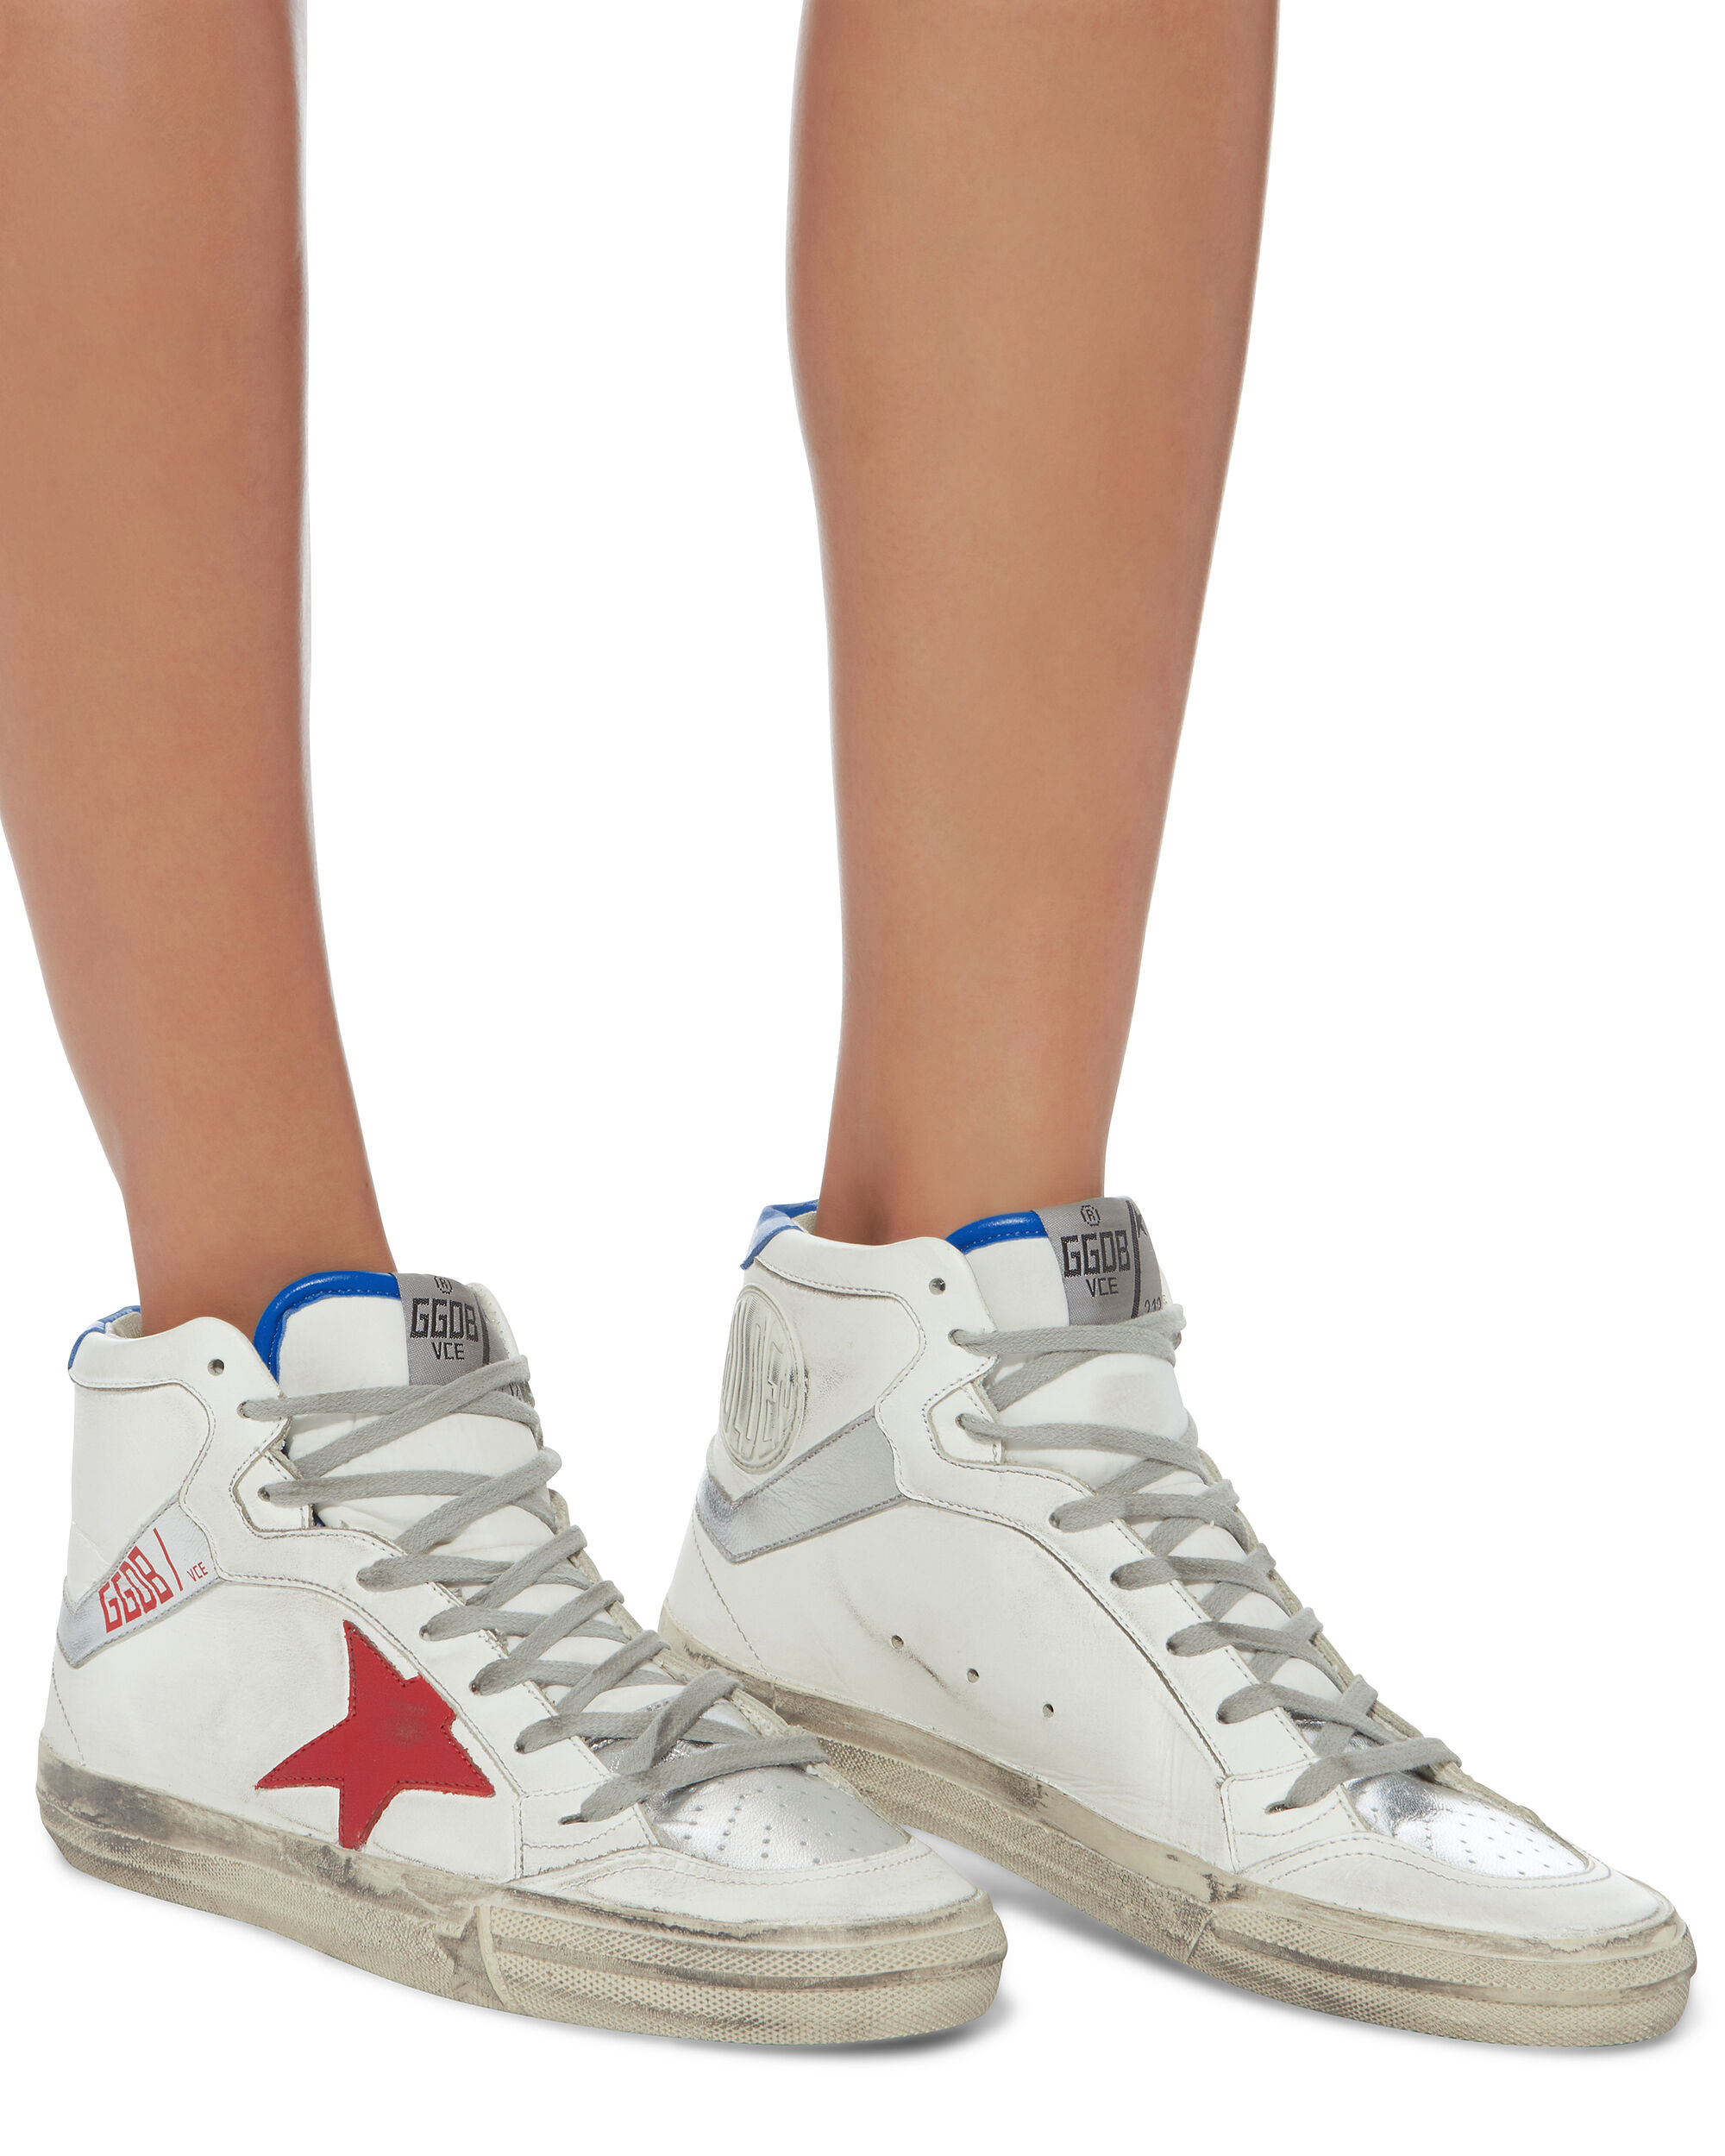 2.12 High-Top Red Star Leather Sneakers, WHITE, hi-res